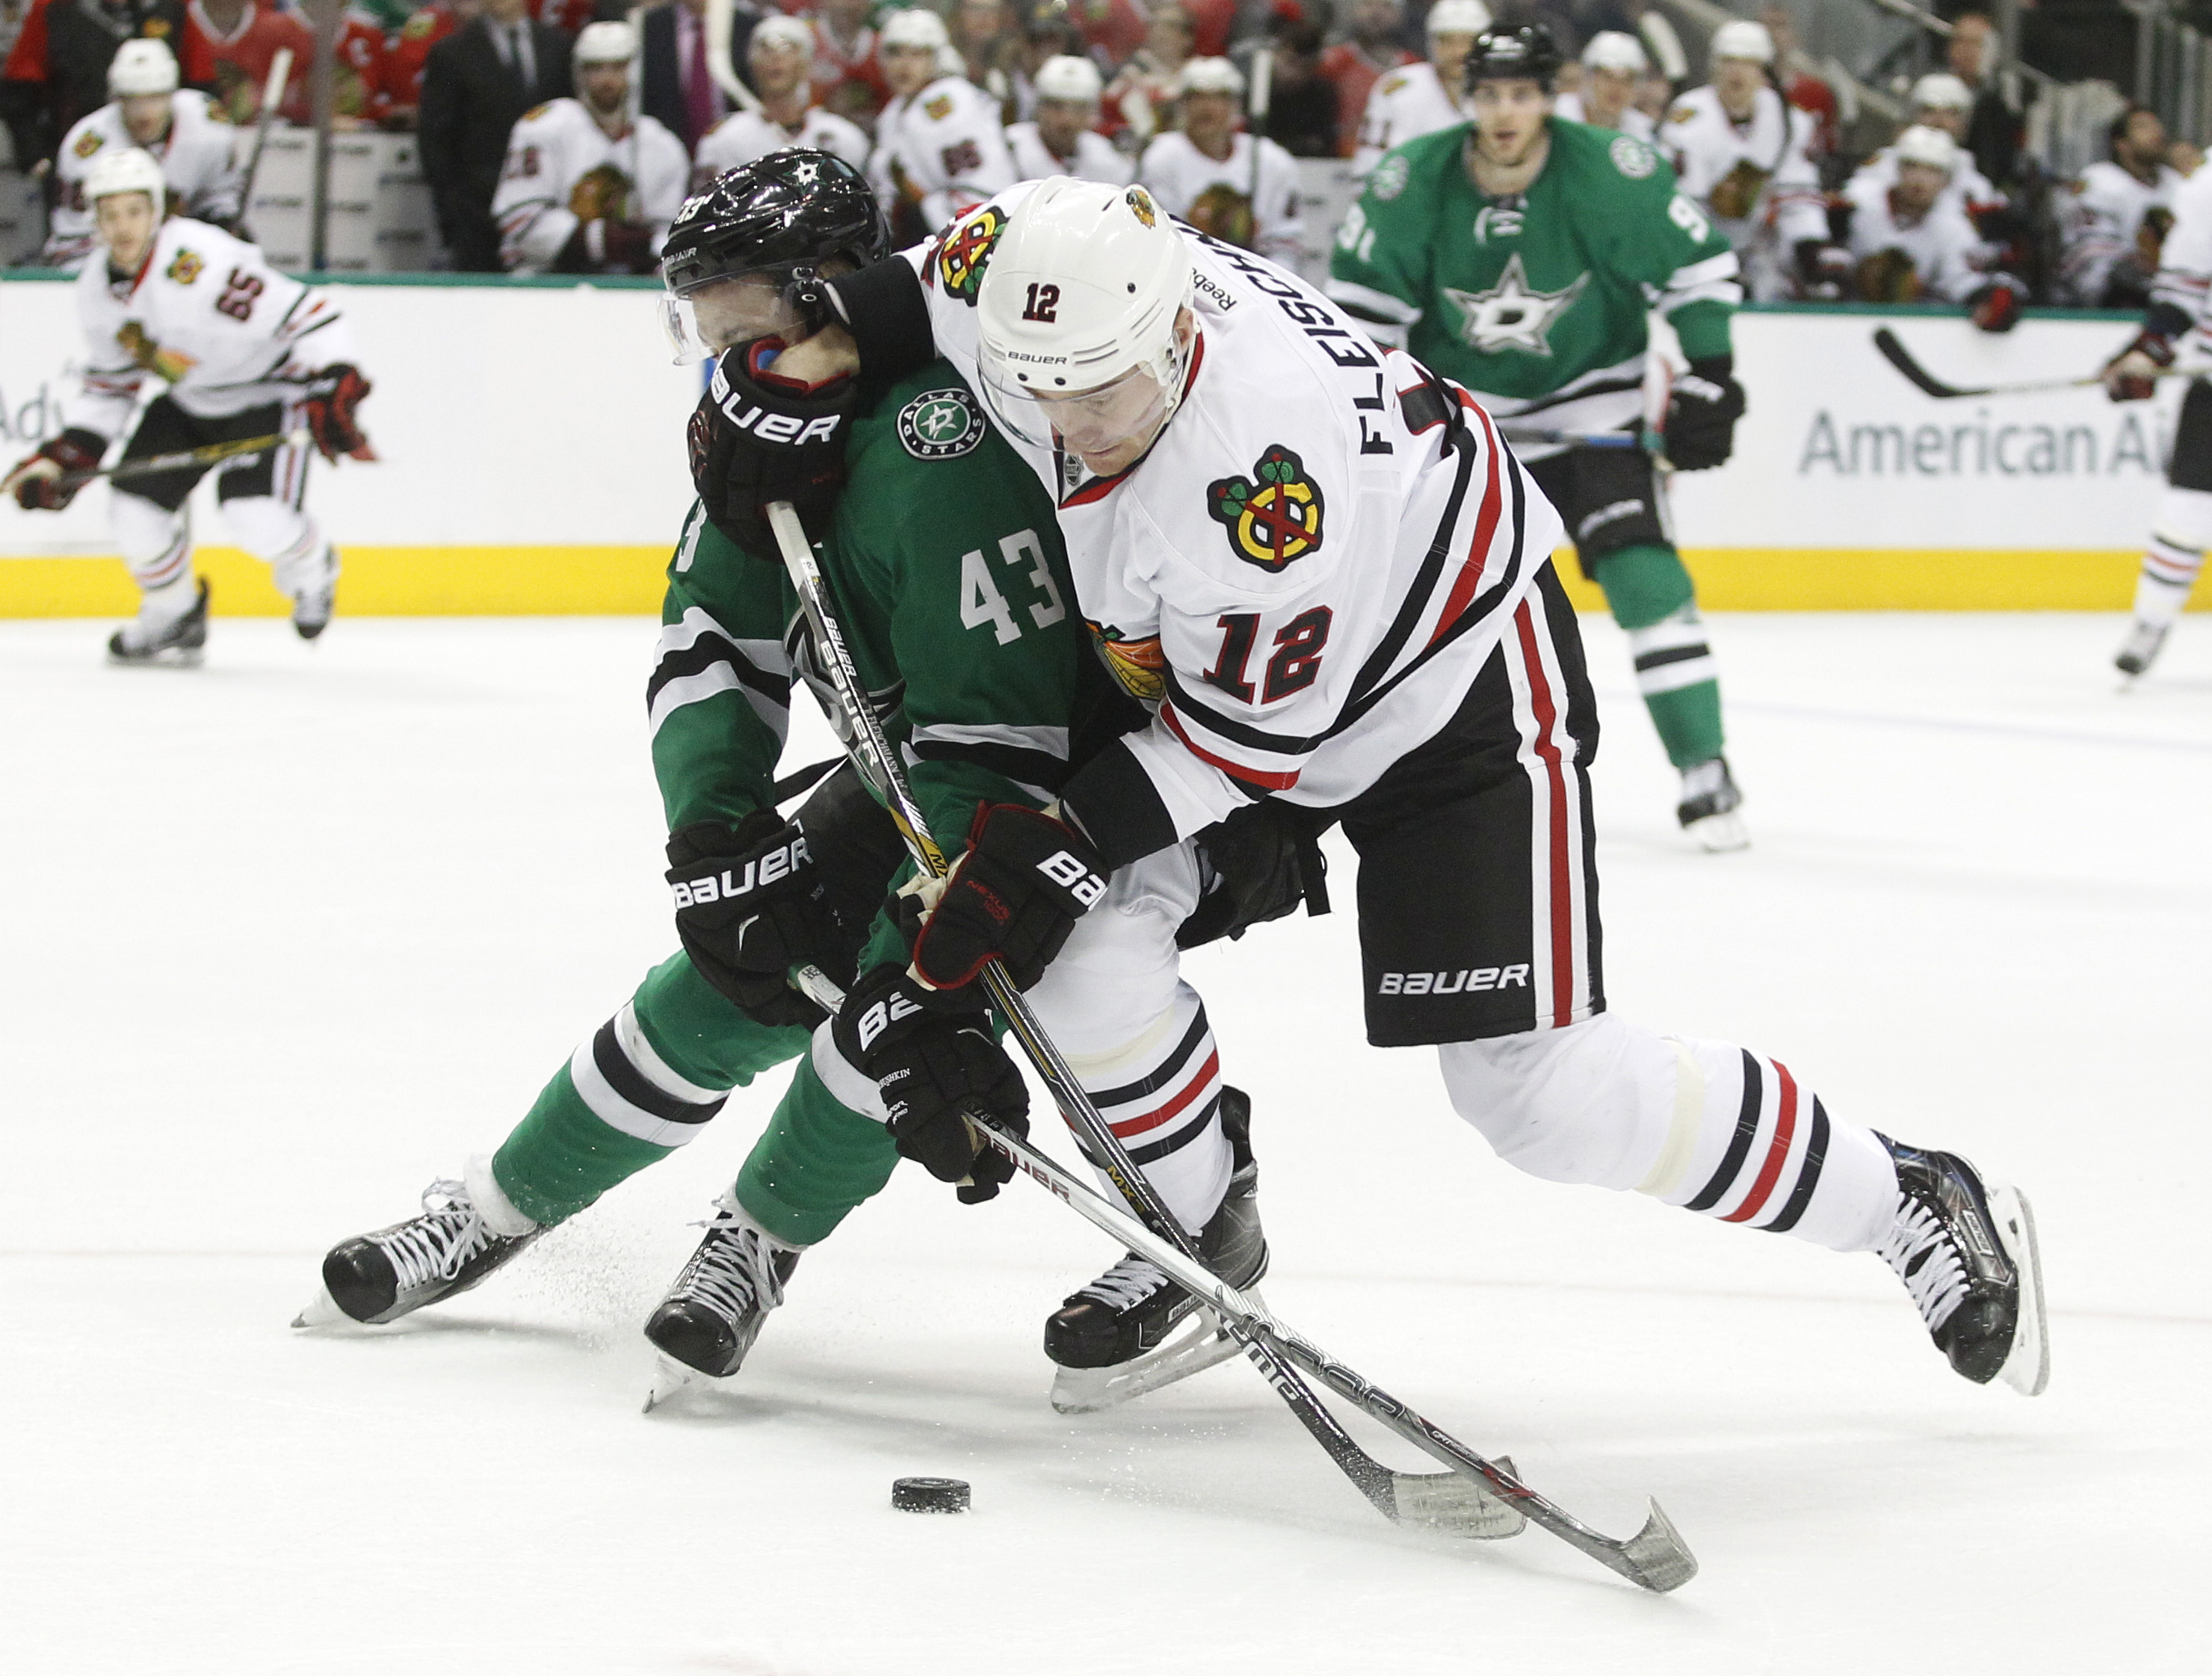 Chicago Blackhawks left wing Tomas Fleischmann (12) and Dallas Stars right wing Valeri Nichushkin (43) battle for the puck during the second period of an NHL hockey game Friday, March 11, 2016, in Dallas.  (AP Photo/Tim Sharp)